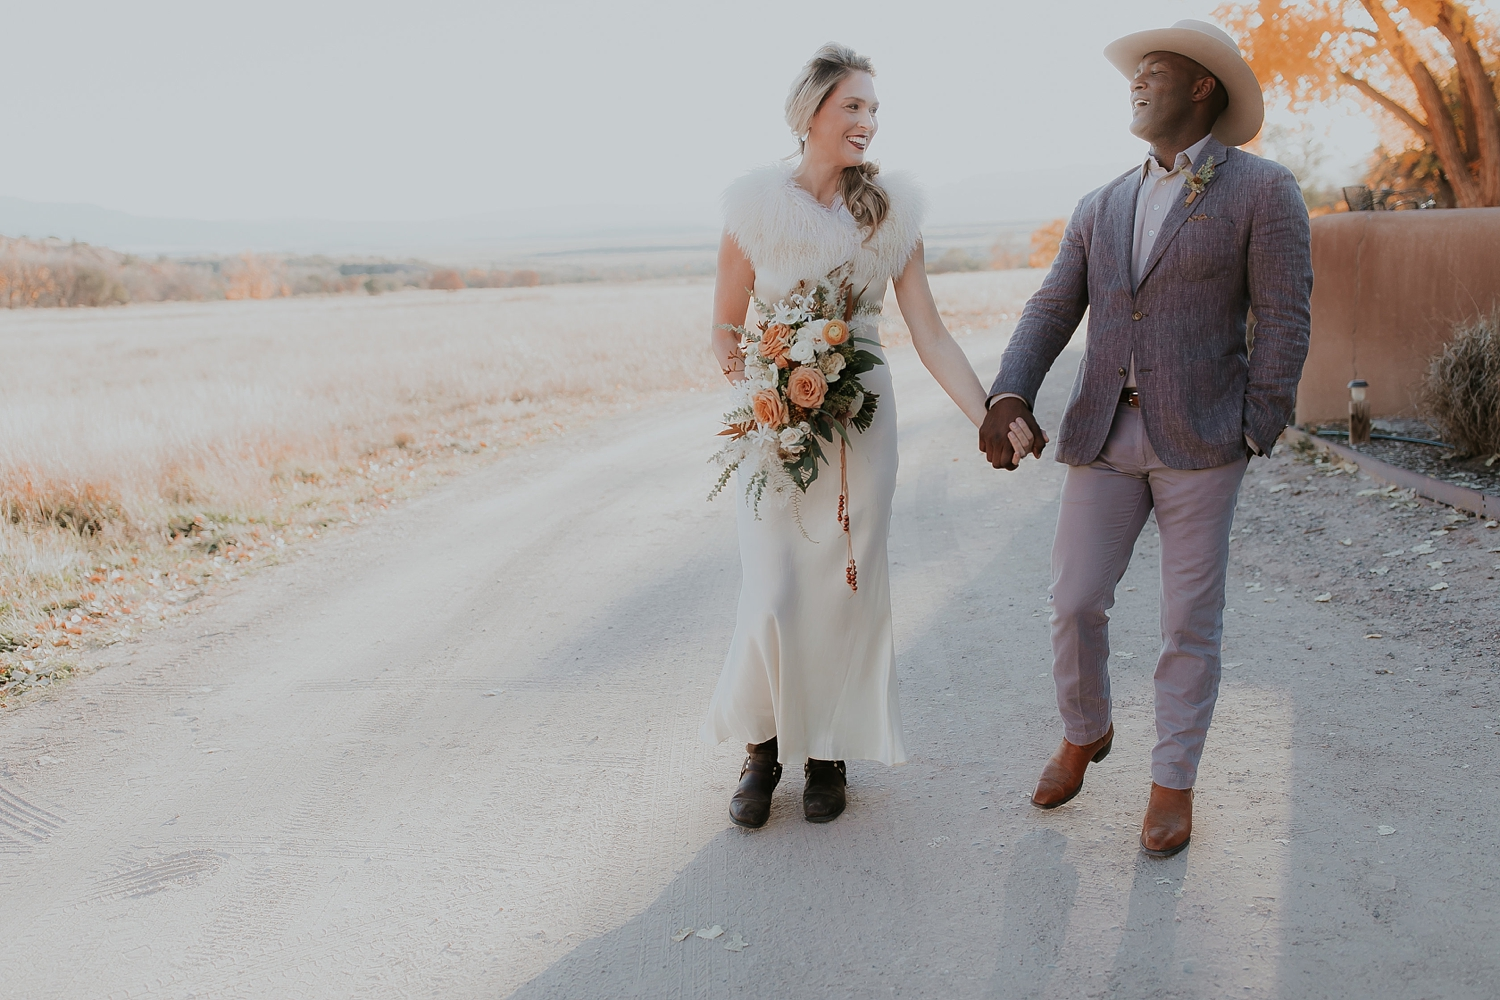 Alicia+lucia+photography+-+albuquerque+wedding+photographer+-+santa+fe+wedding+photography+-+new+mexico+wedding+photographer+-+new+mexico+ghost+ranch+wedding+-+styled+wedding+shoot_0051.jpg